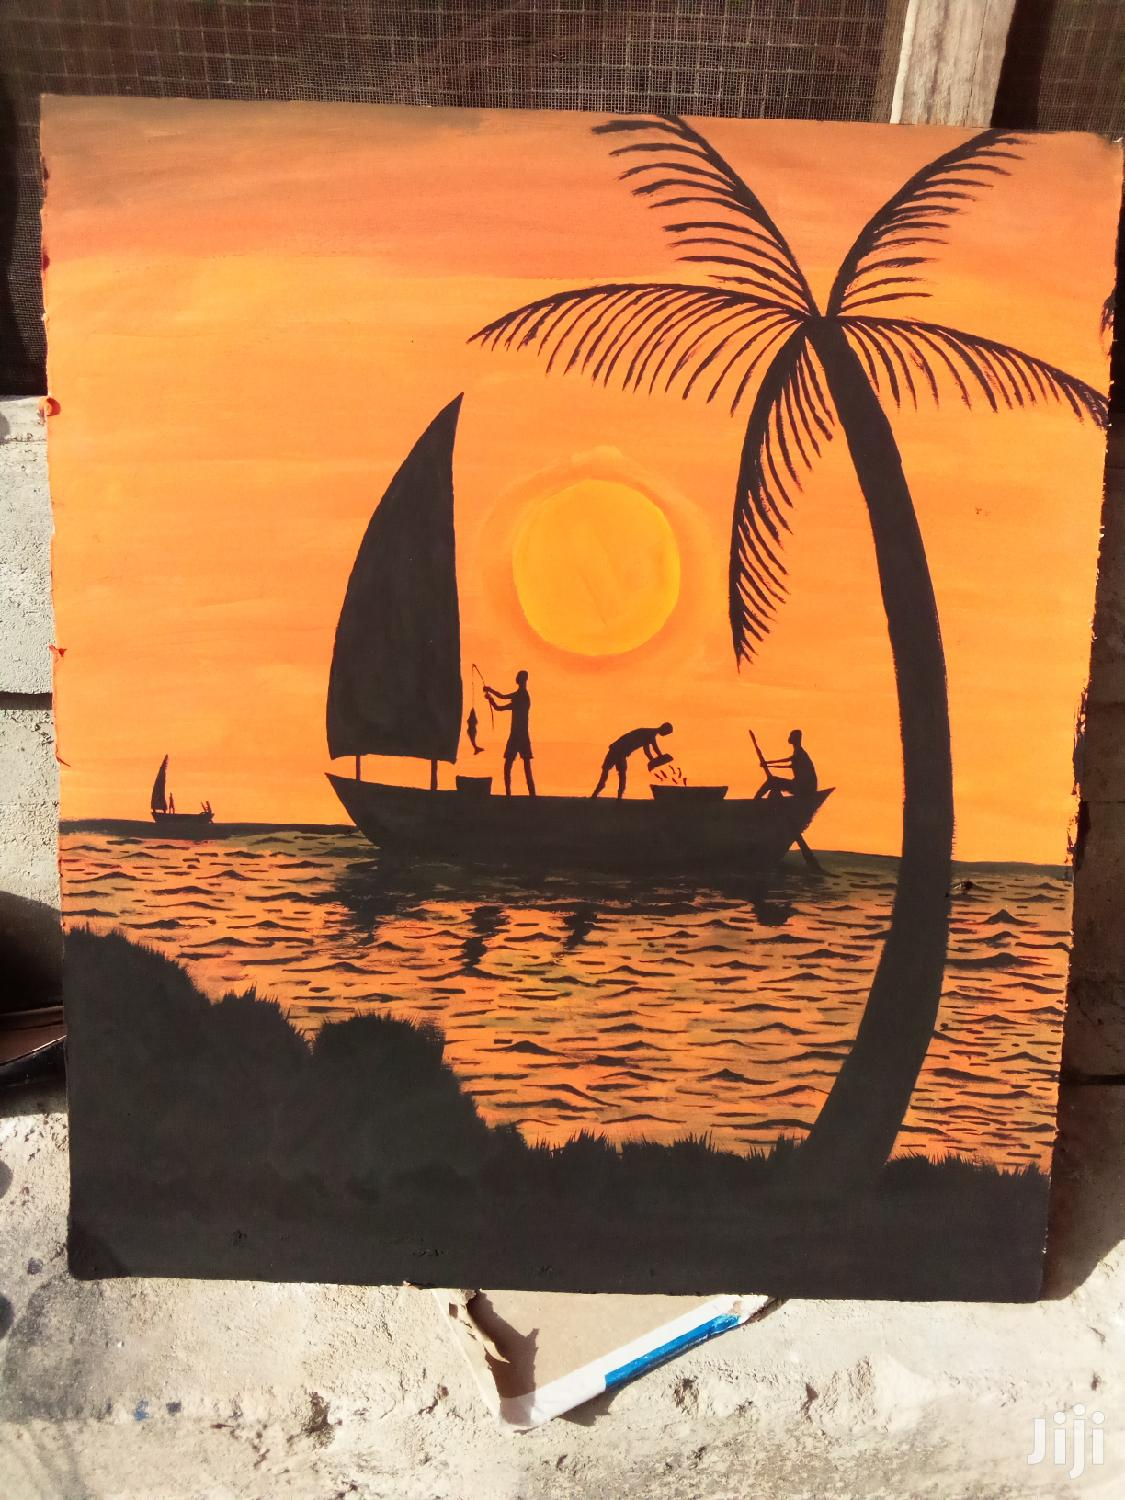 Archive: Sunset Sea Scape on Gypsum Board